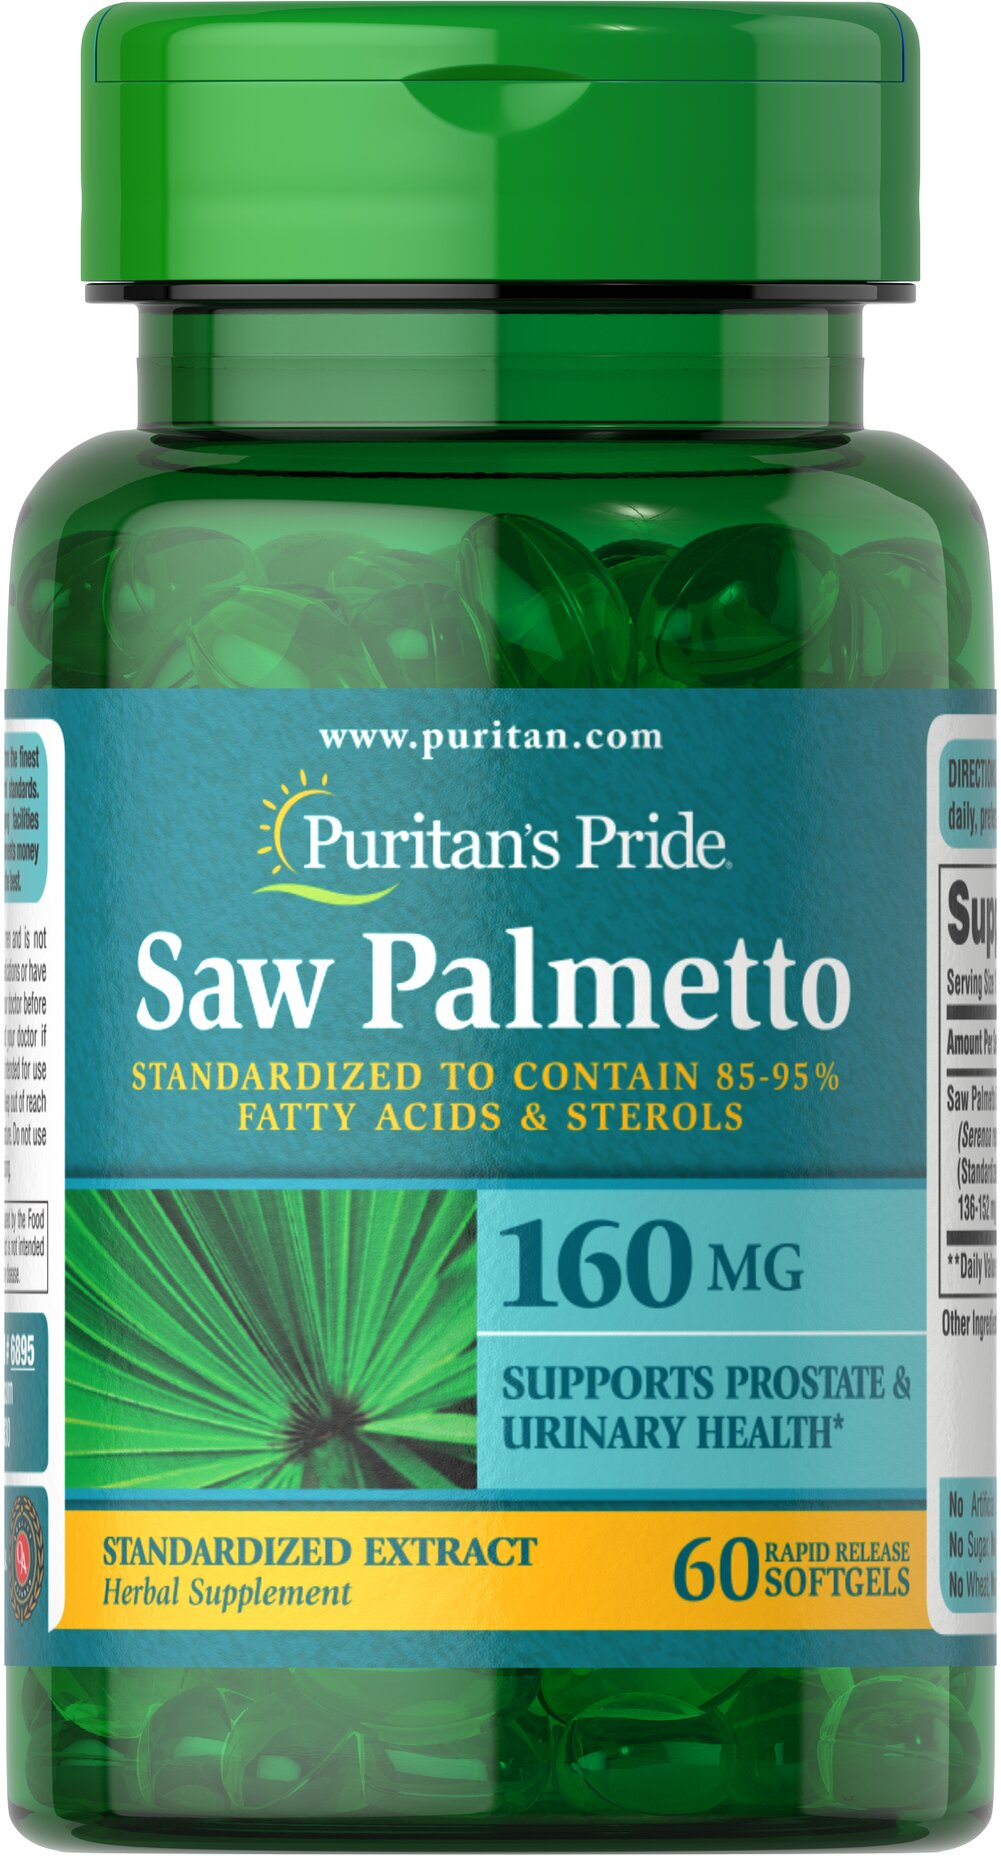 Saw Palmetto Standardized Extract 160 mg  60 Softgels 160 mg $14.99